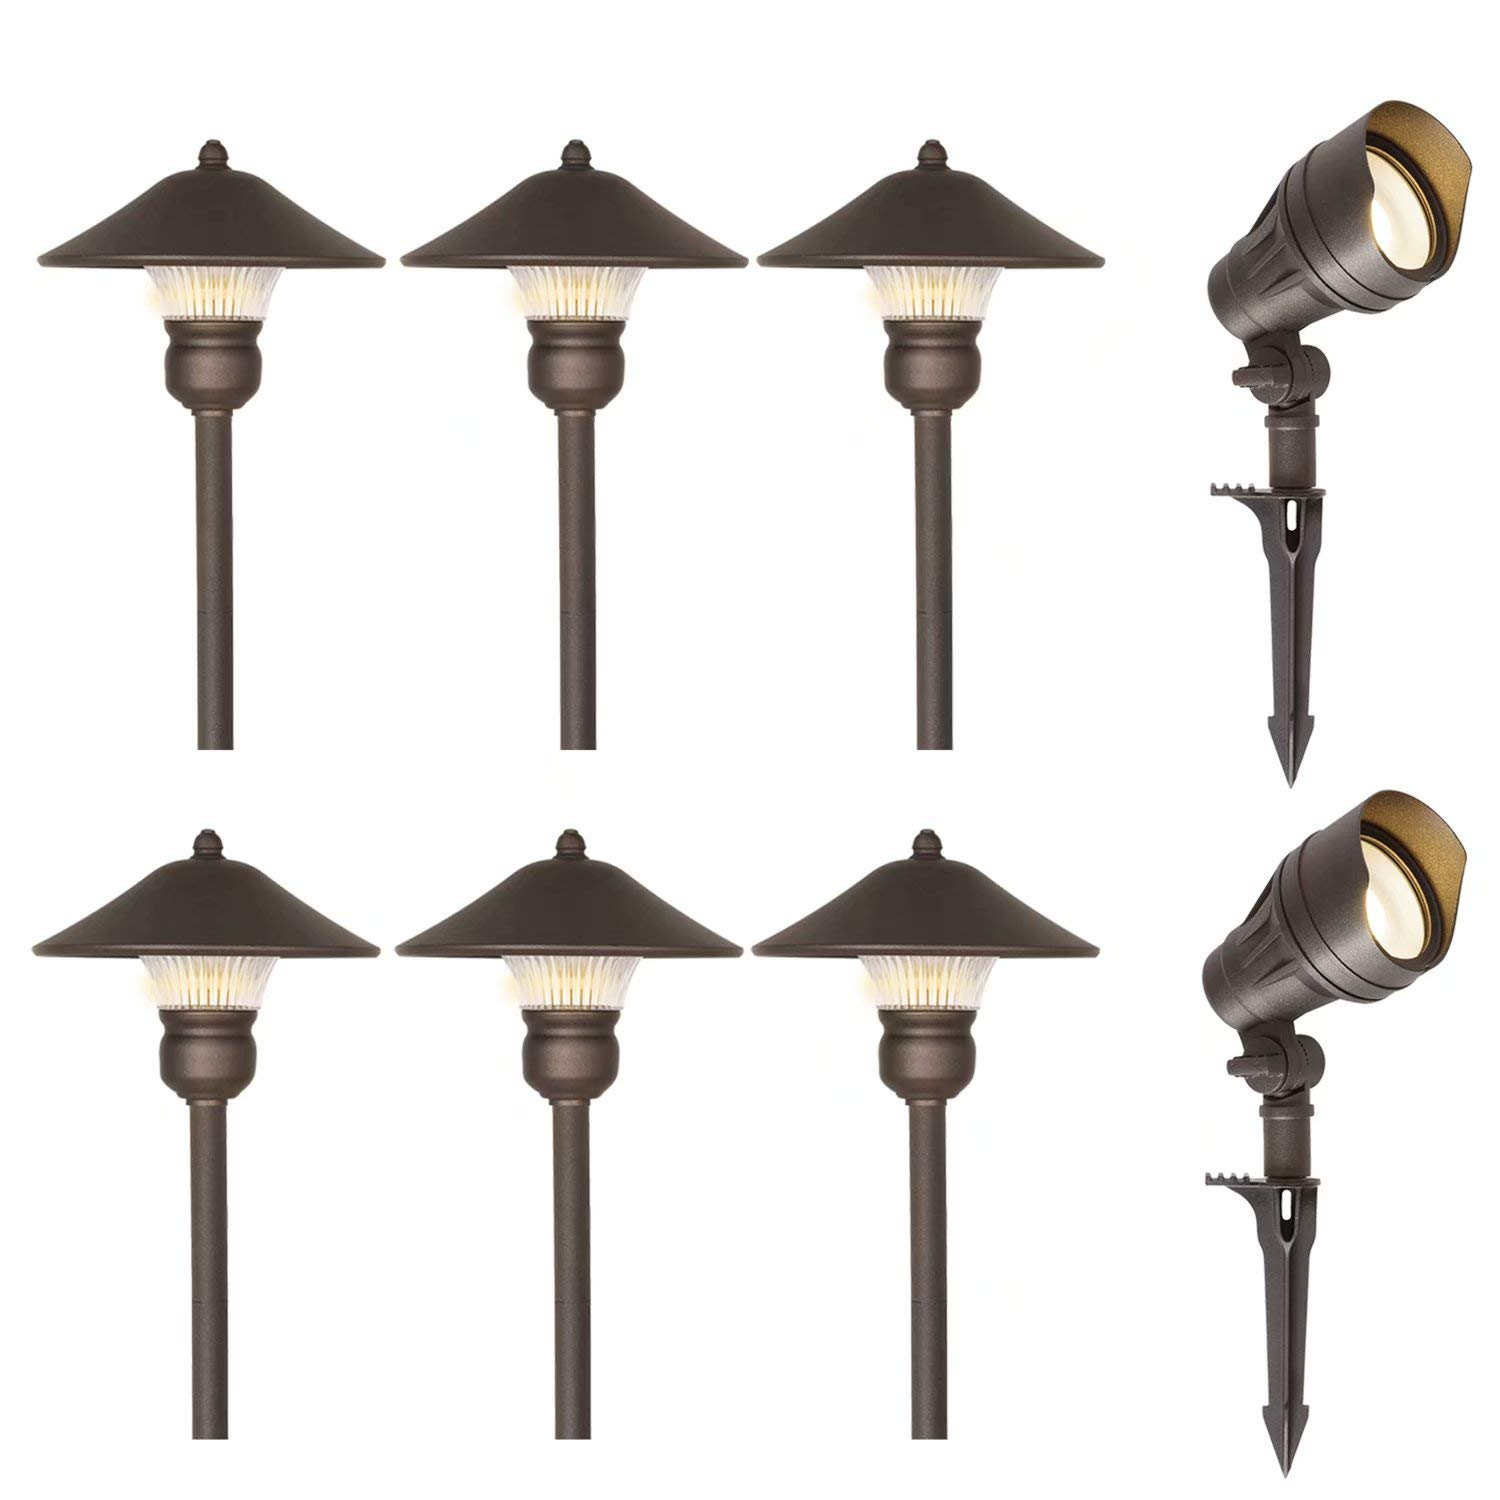 hykolity 8 Pack Low Voltage LED Landscape Kits, 12V Pathway Flood Light Kits, 13.3W 540LM and 3W 150LM Wired for Outdoor Yard Lawn, Die-cast Aluminum, 75W and 30W Equivalent 15-Year Lifespan by hykolity